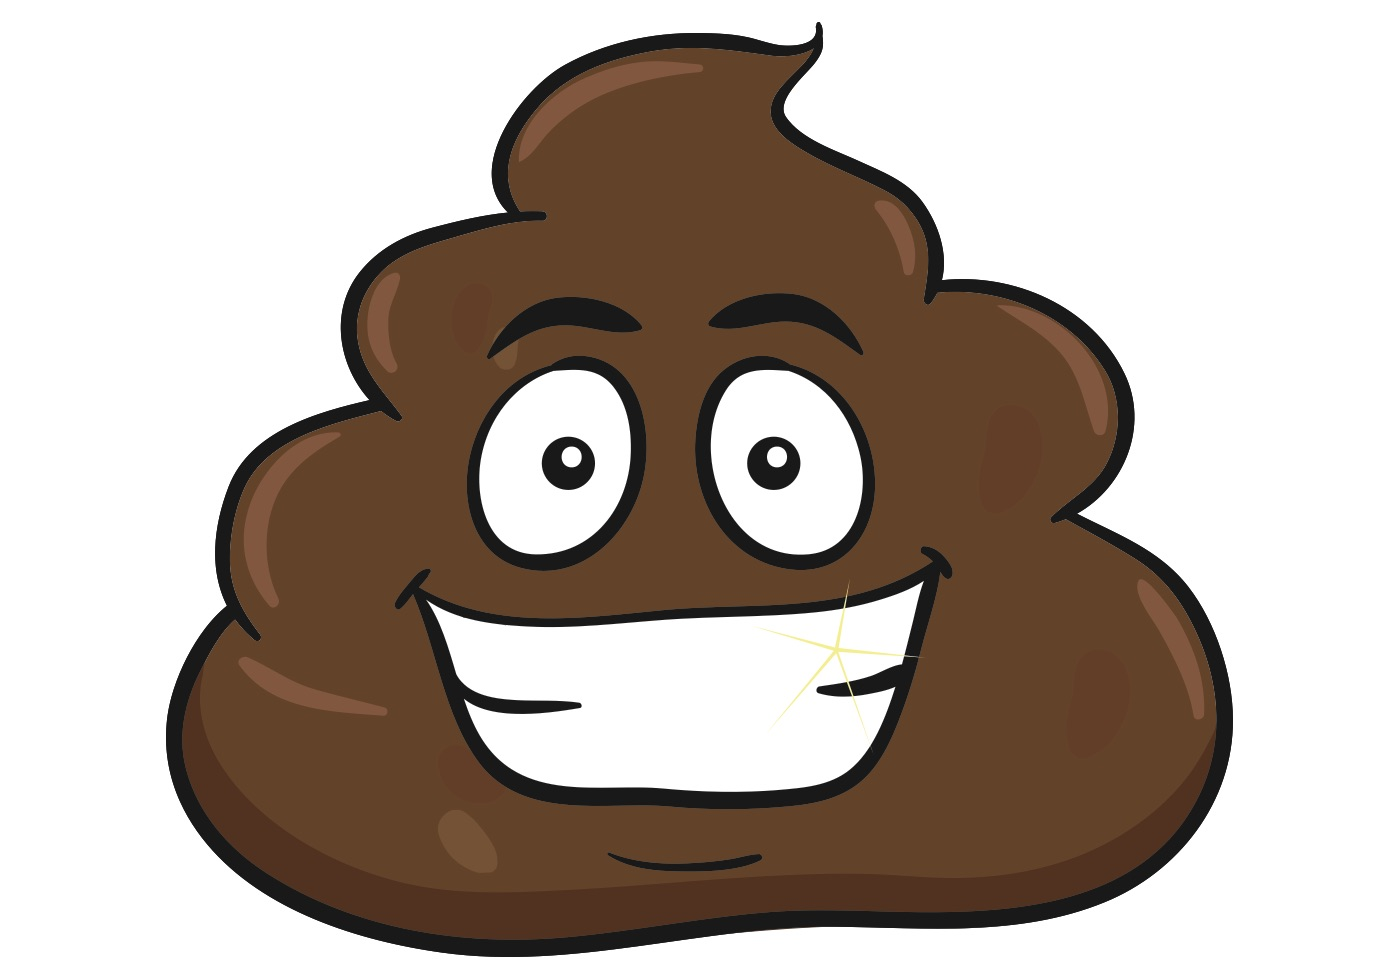 smiling pile of poo emoji download free vector art